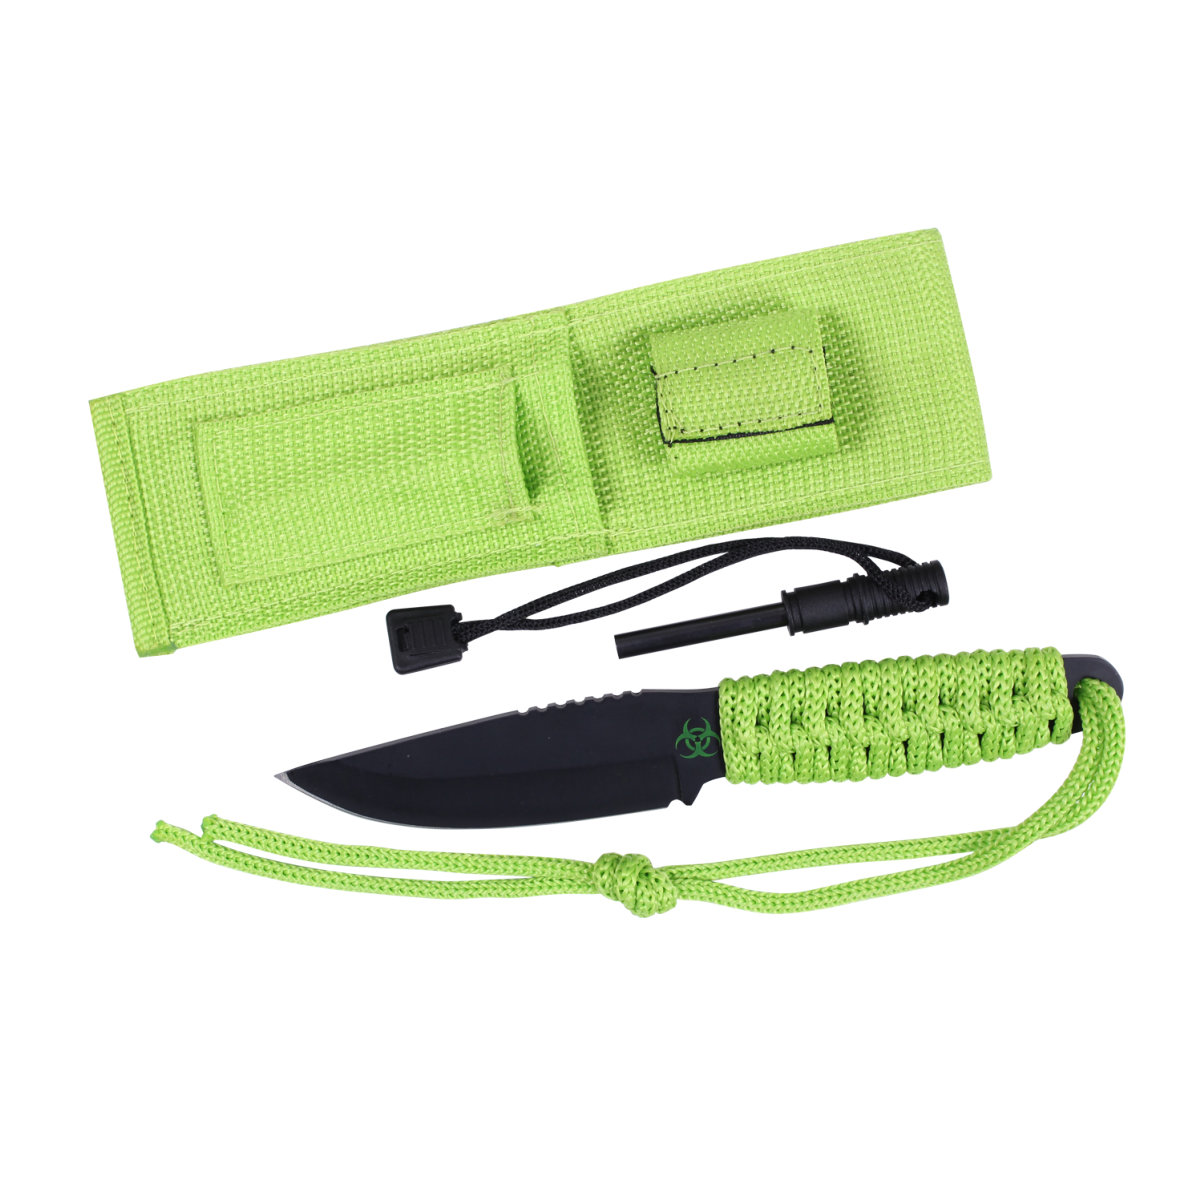 Rothco Zombie Paracord Survival Knife With Fire Starter and Sheath, Neon Green by Rothco